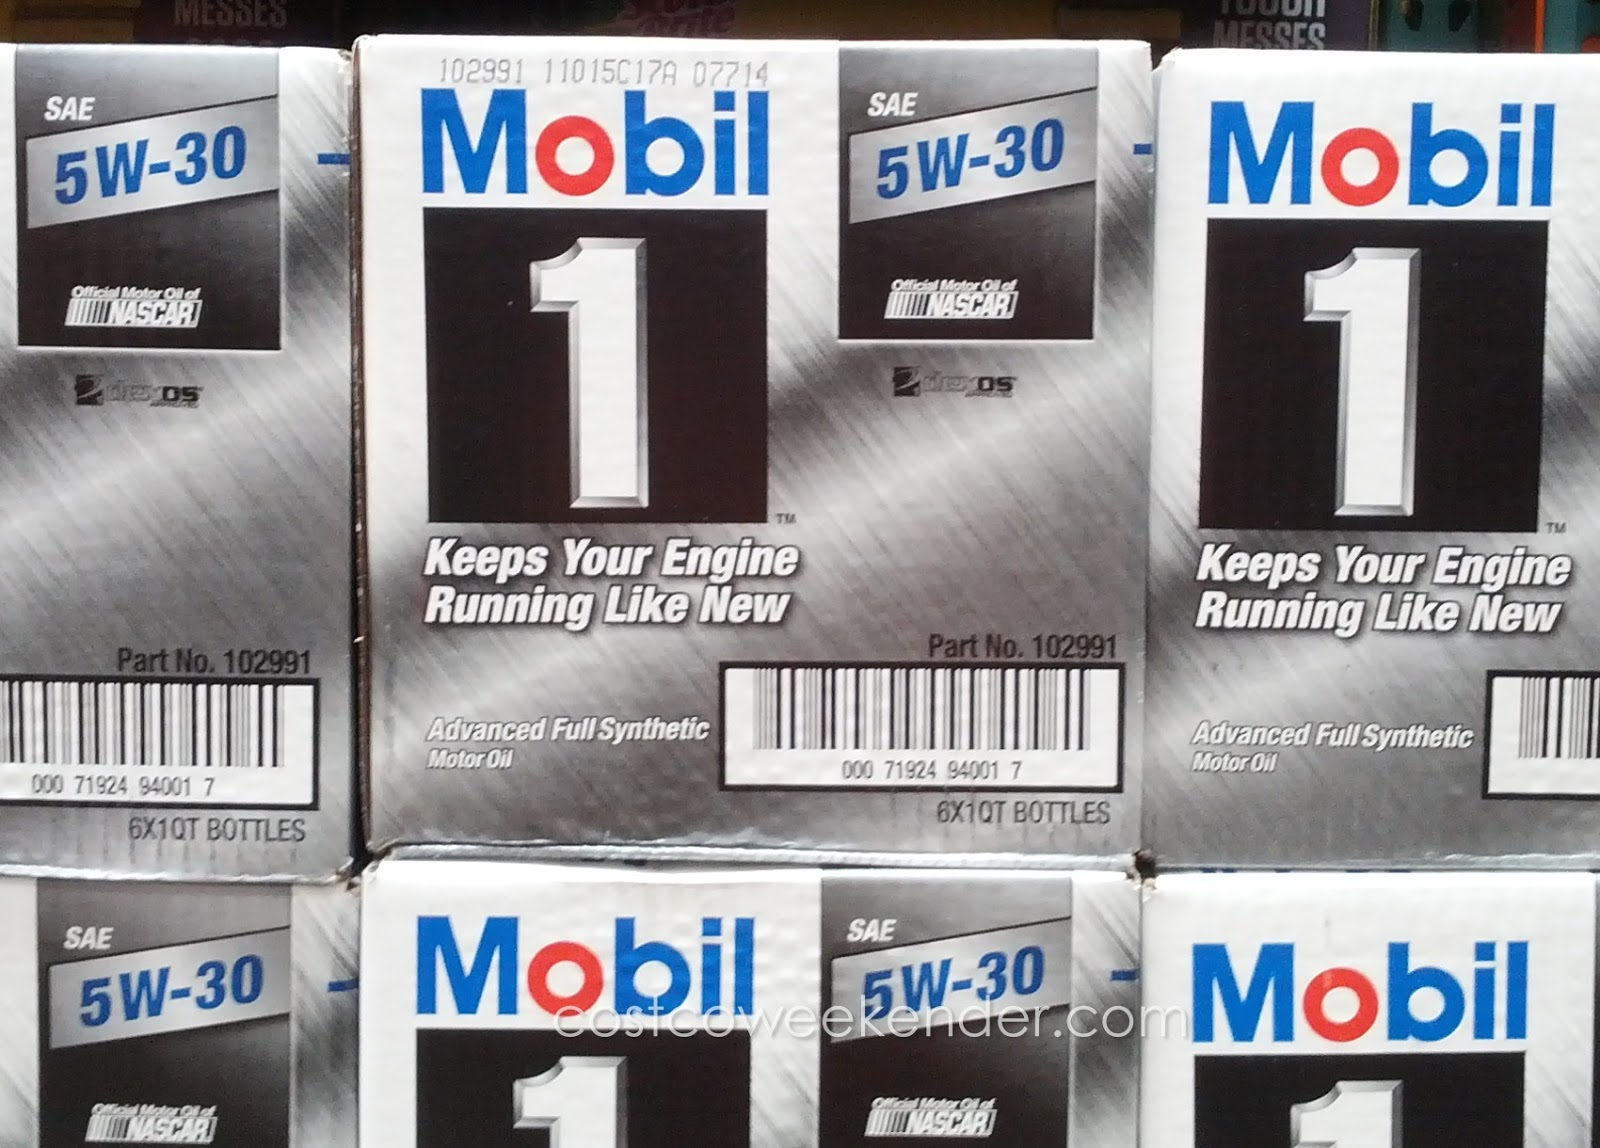 Save money and change your own car's engine oil with Mobil 1 5W-30 synthetic motor oil